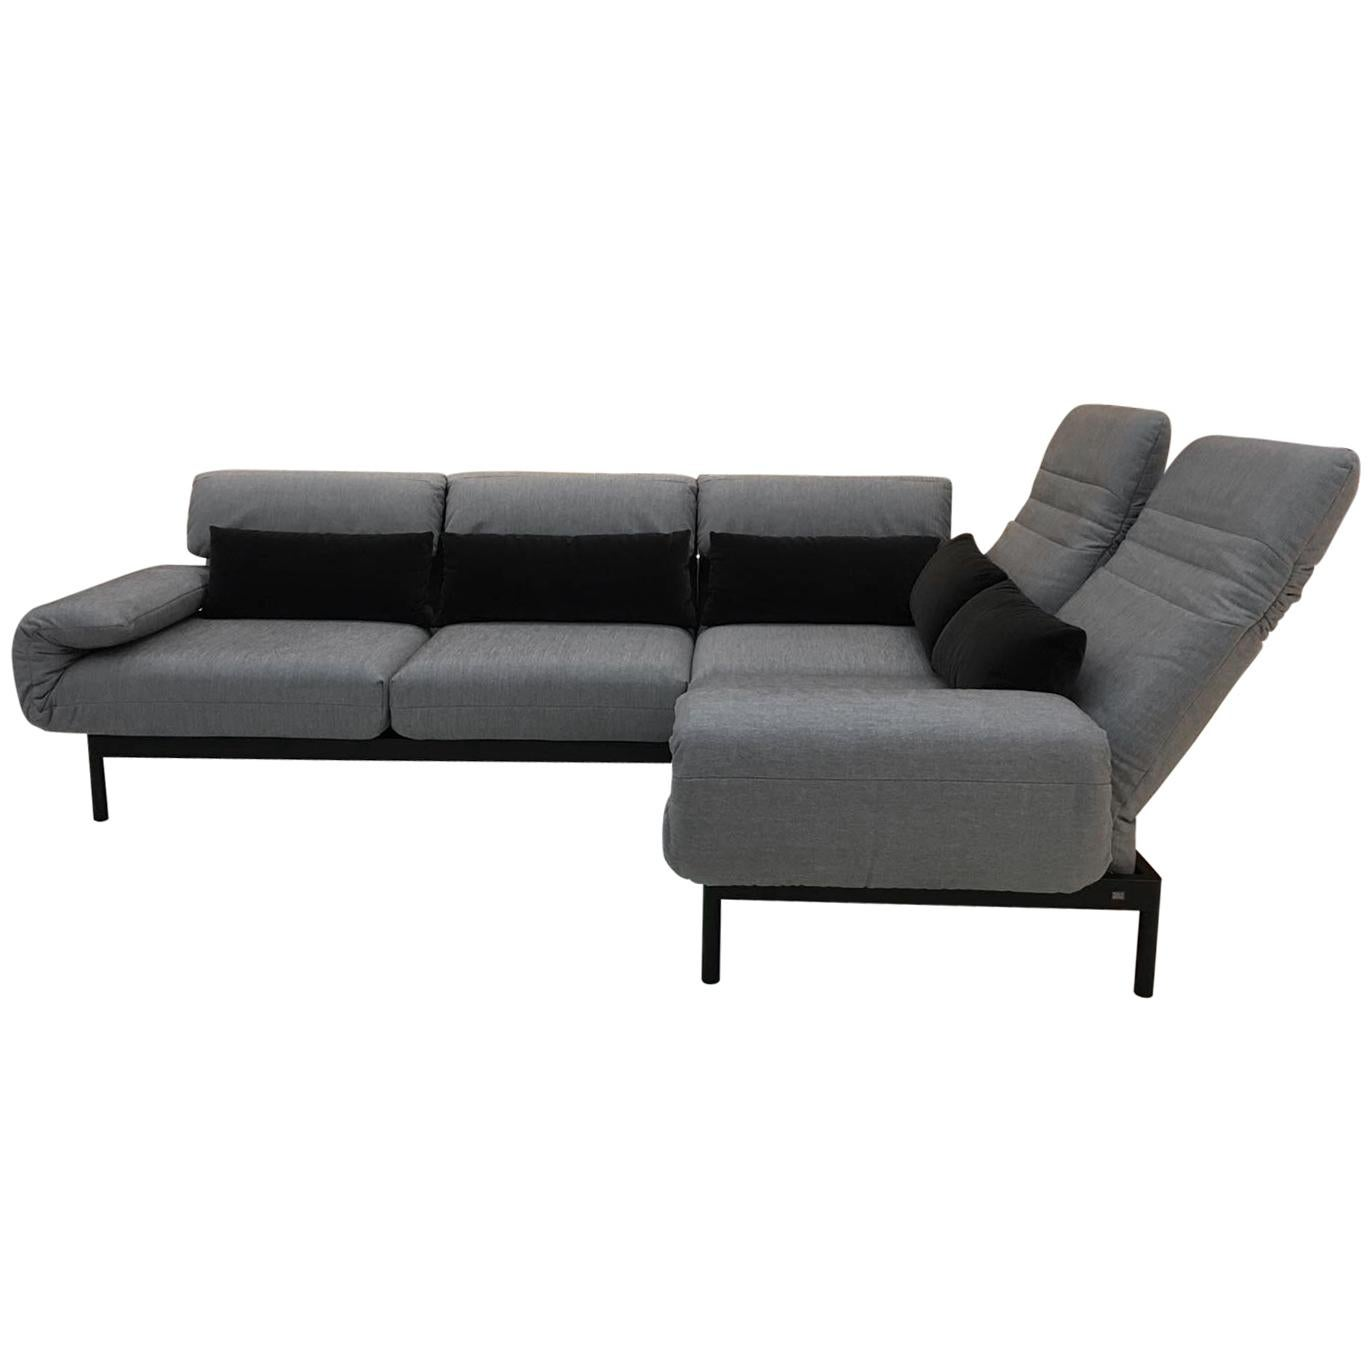 steel frame sofa build a simple table 2 piece sectional in grey fabric black with recline function for sale